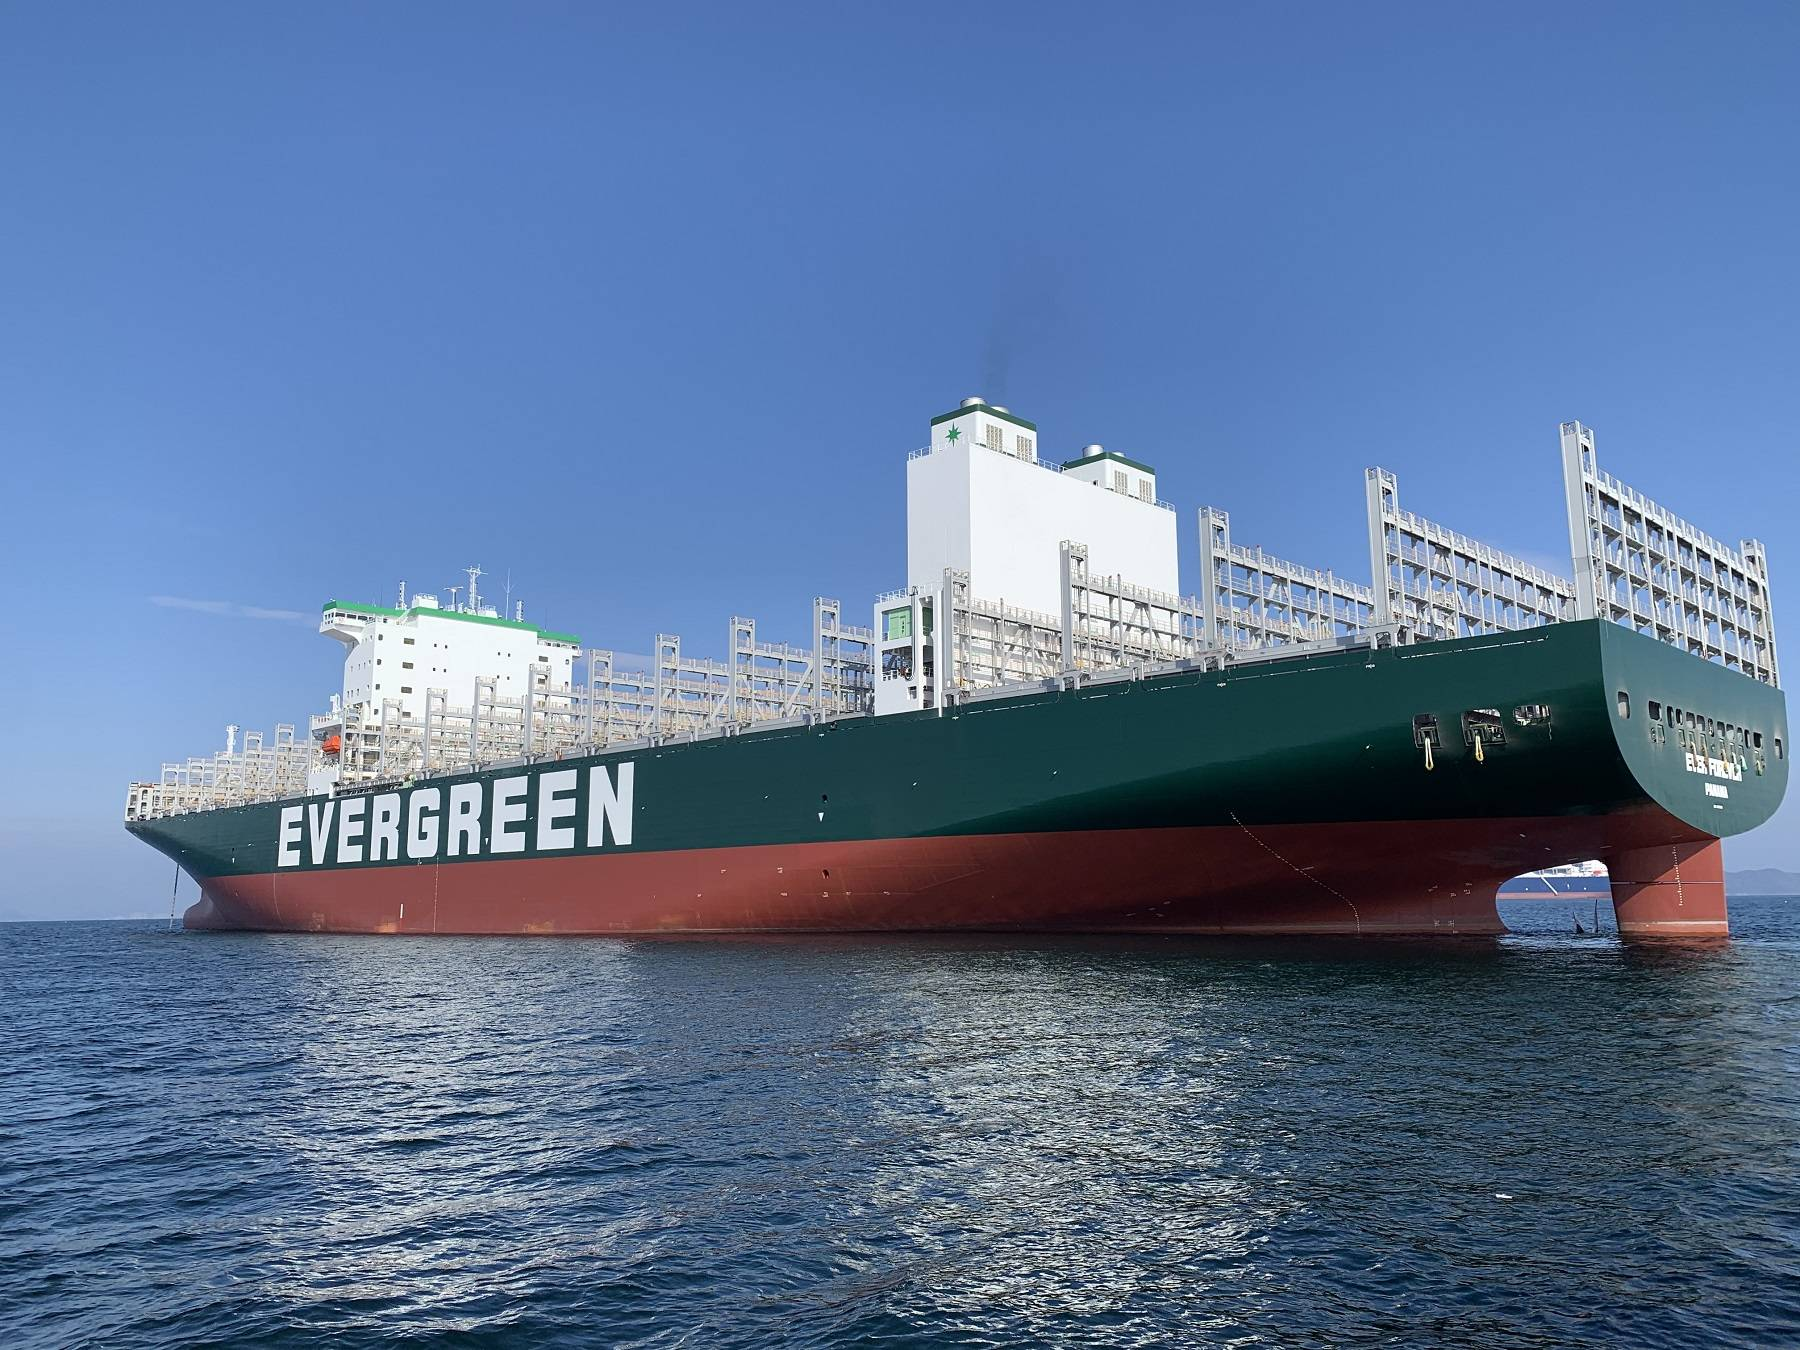 Evergreen Takes Delivery Of Two 12,000 TEU Ships